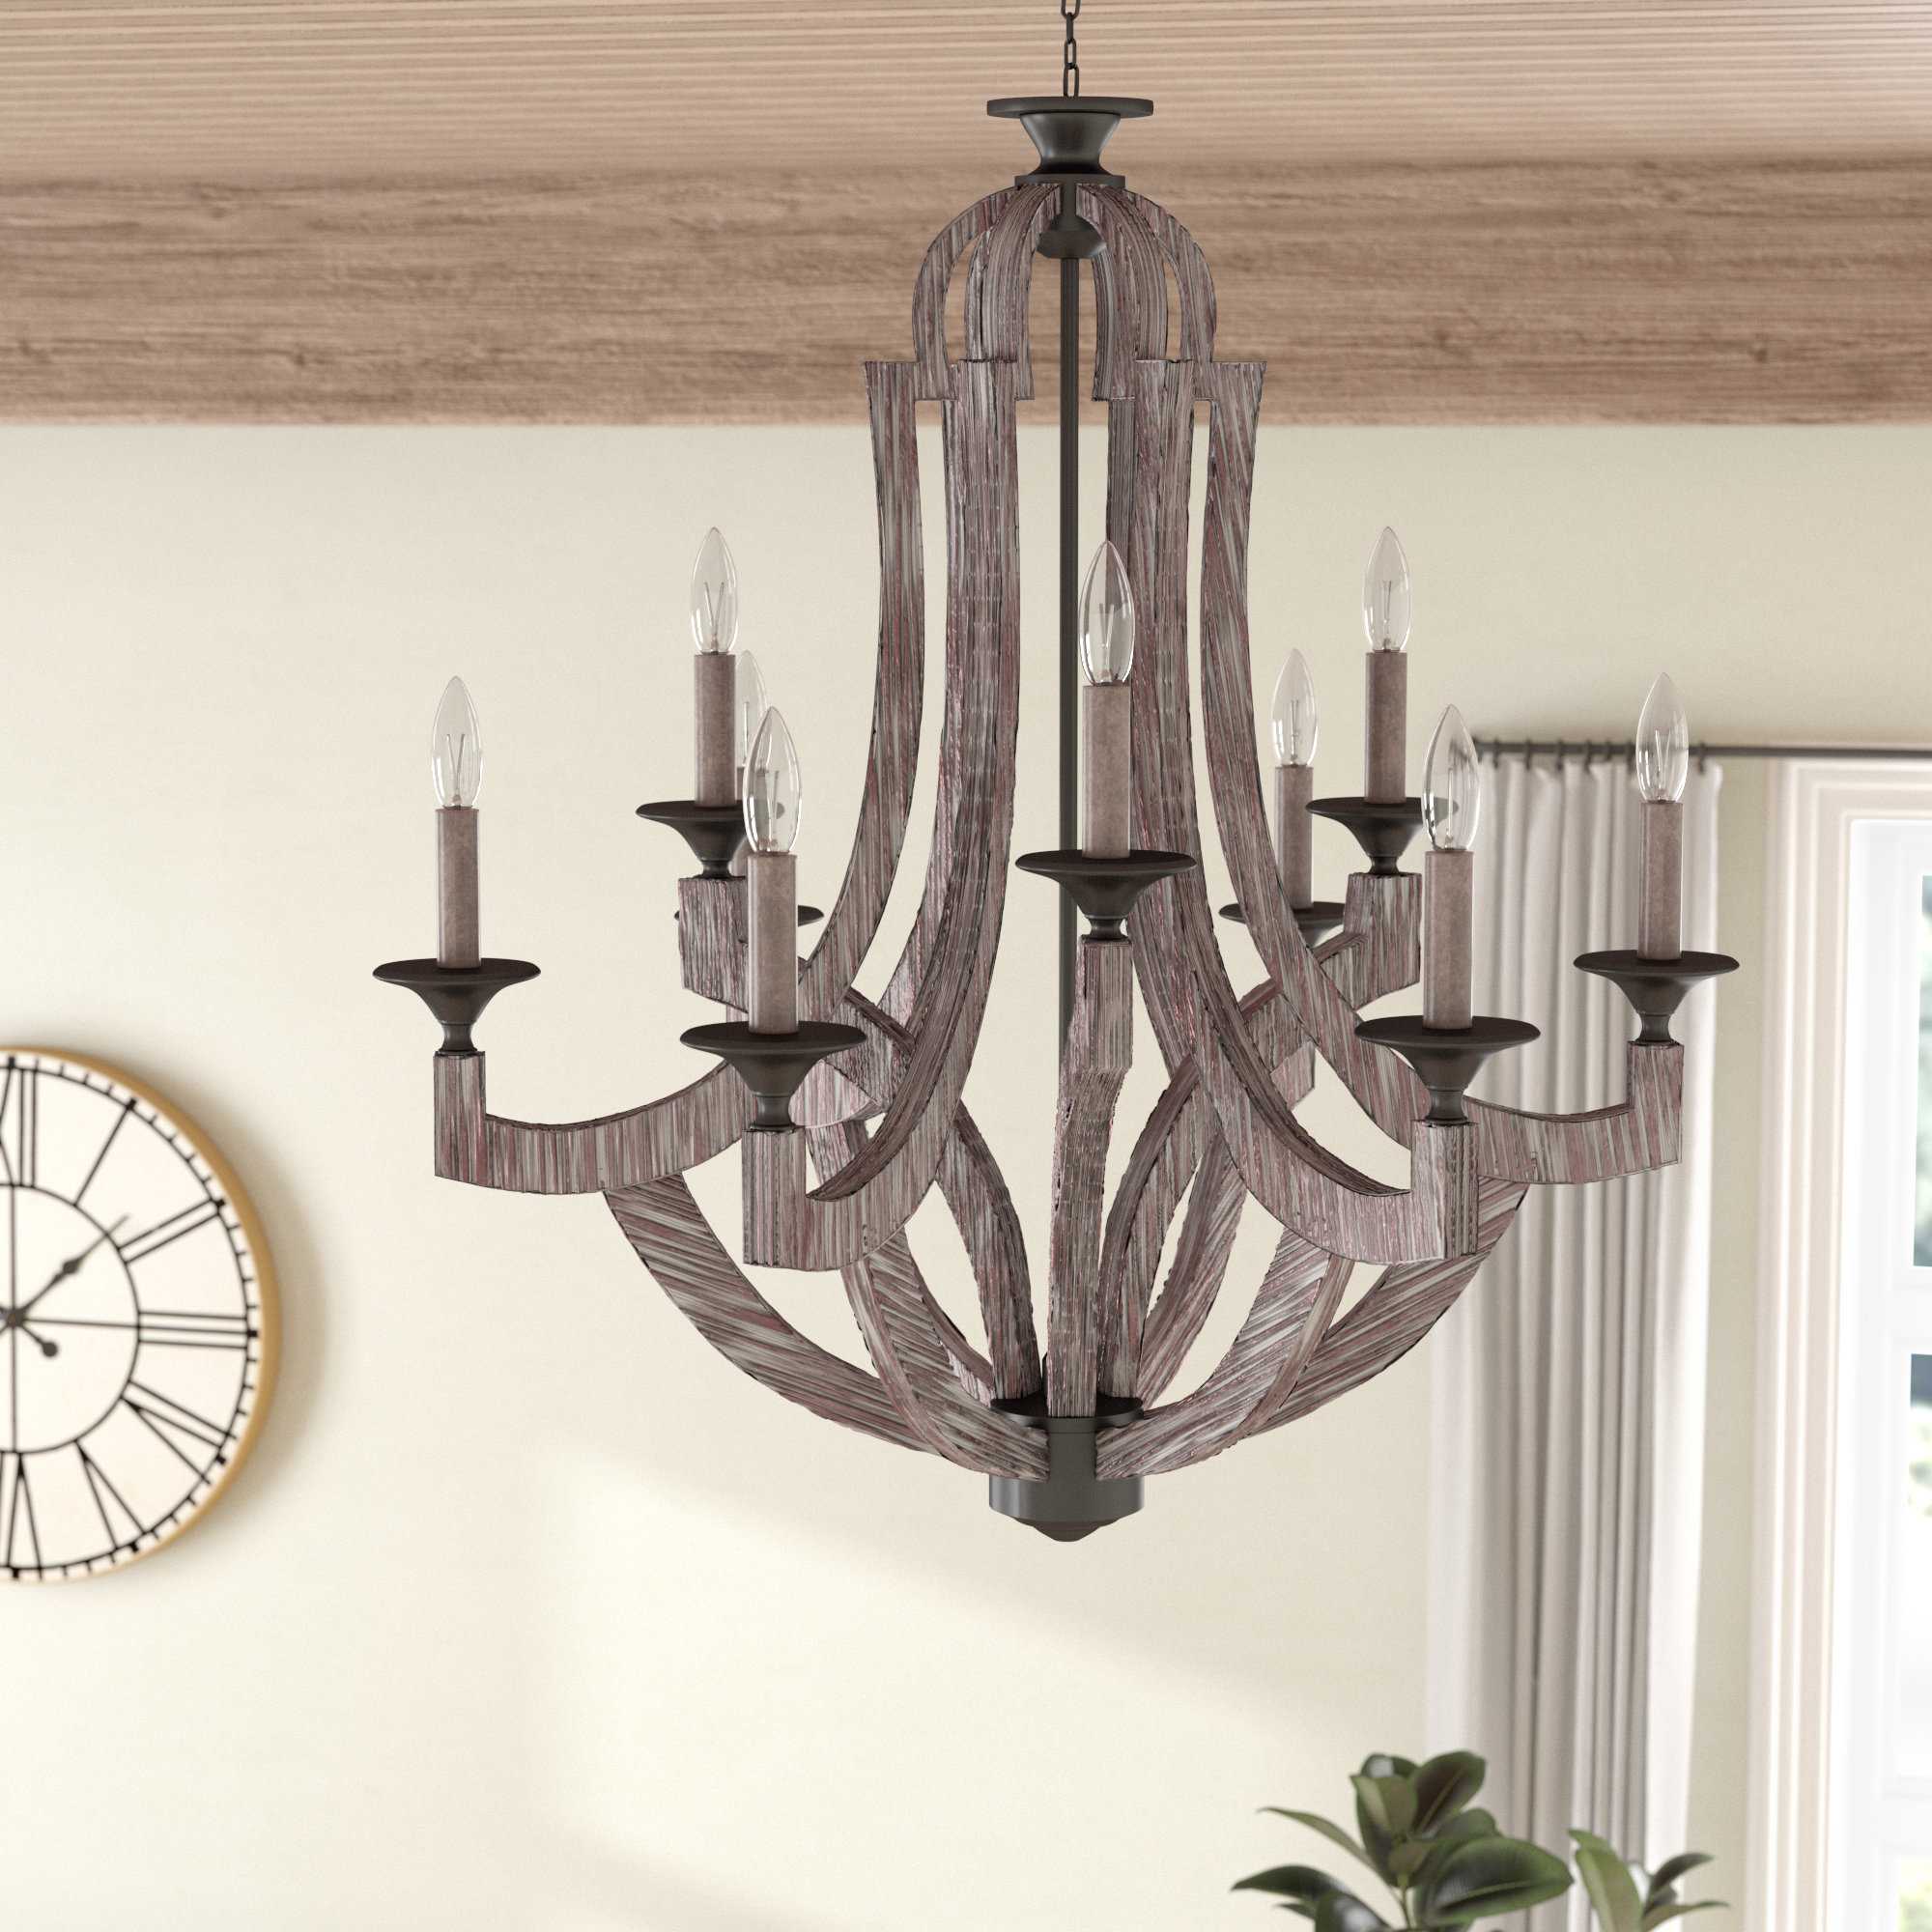 9 Light Candle Chandeliers | Wayfair Within Kenedy 9 Light Candle Style Chandeliers (View 8 of 30)